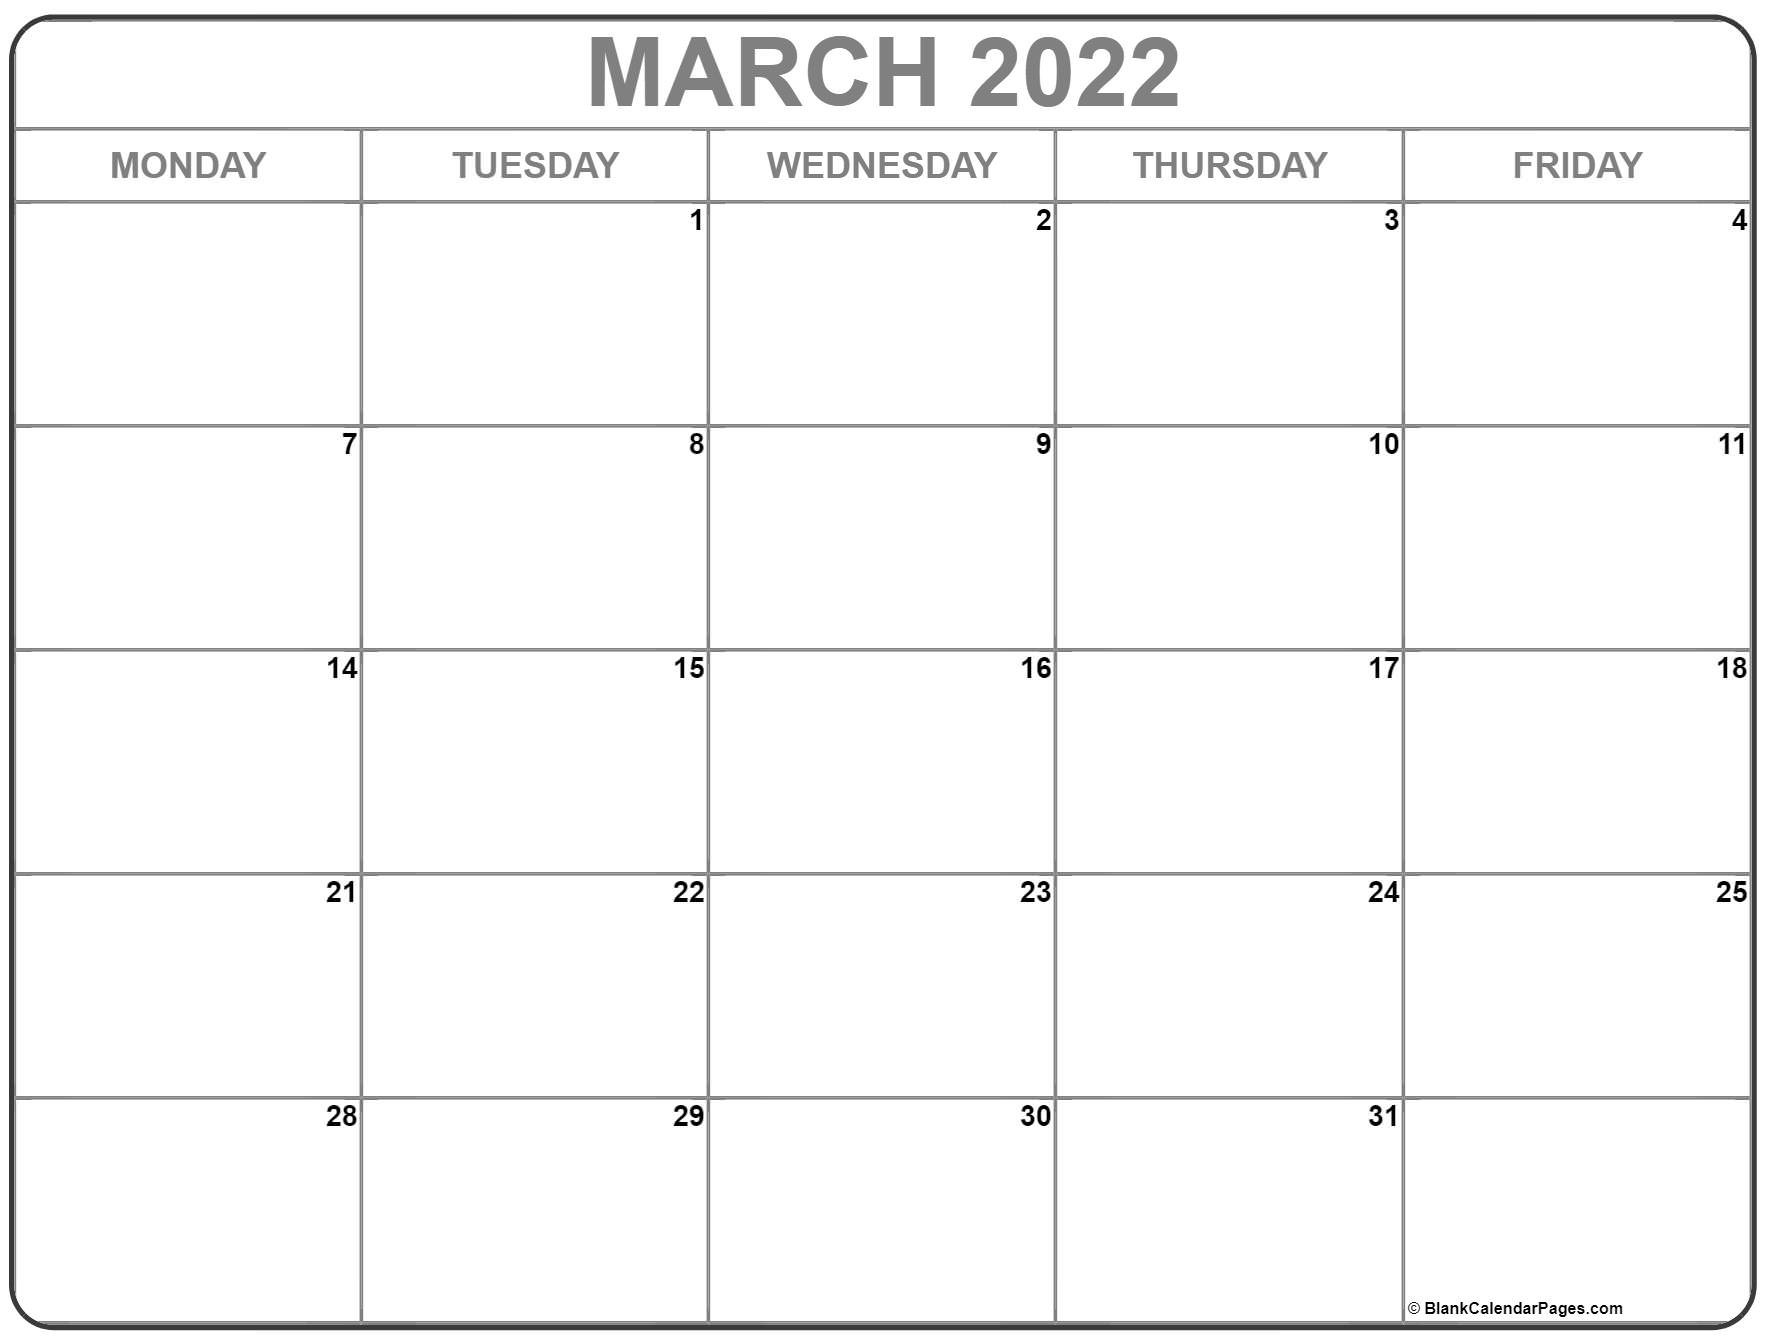 March 2022 Monday Calendar | Monday To Sunday Printable Calendar Monday- Friday